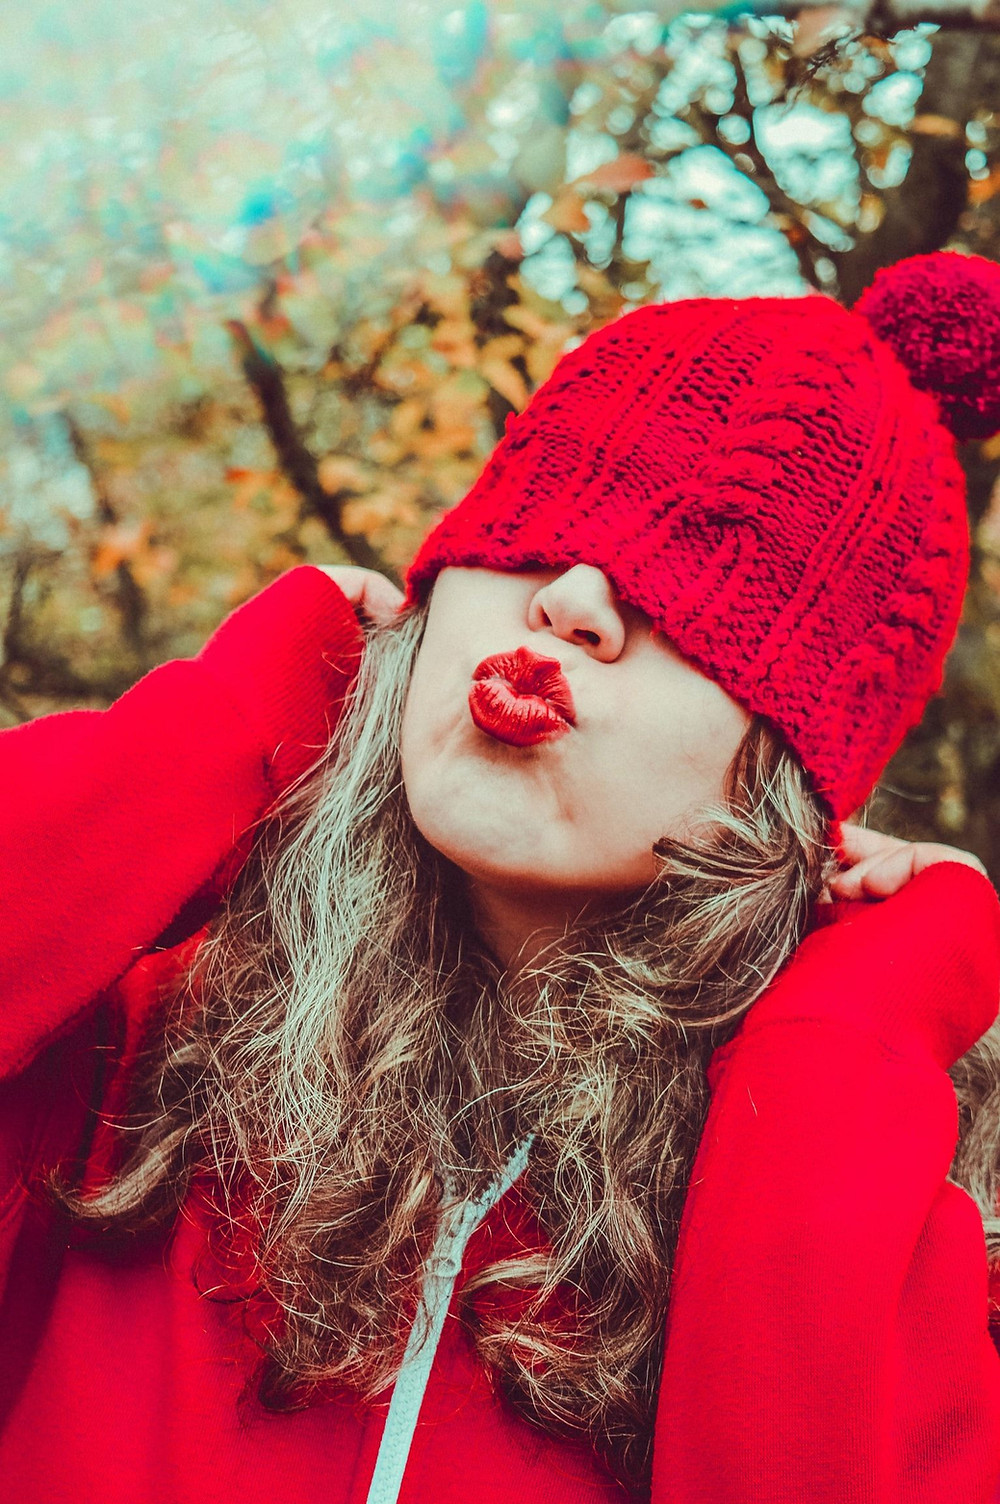 A Close-Up Of A Person With Light Brown Loosely Curly Hair In A Bright Red Hoodie Jacket And Matching Bright Red Yarn Knitted Hat Pulled Over Their Eyes, Puckers Up Their Bright Red Lipsticked Lips As If About To Kiss